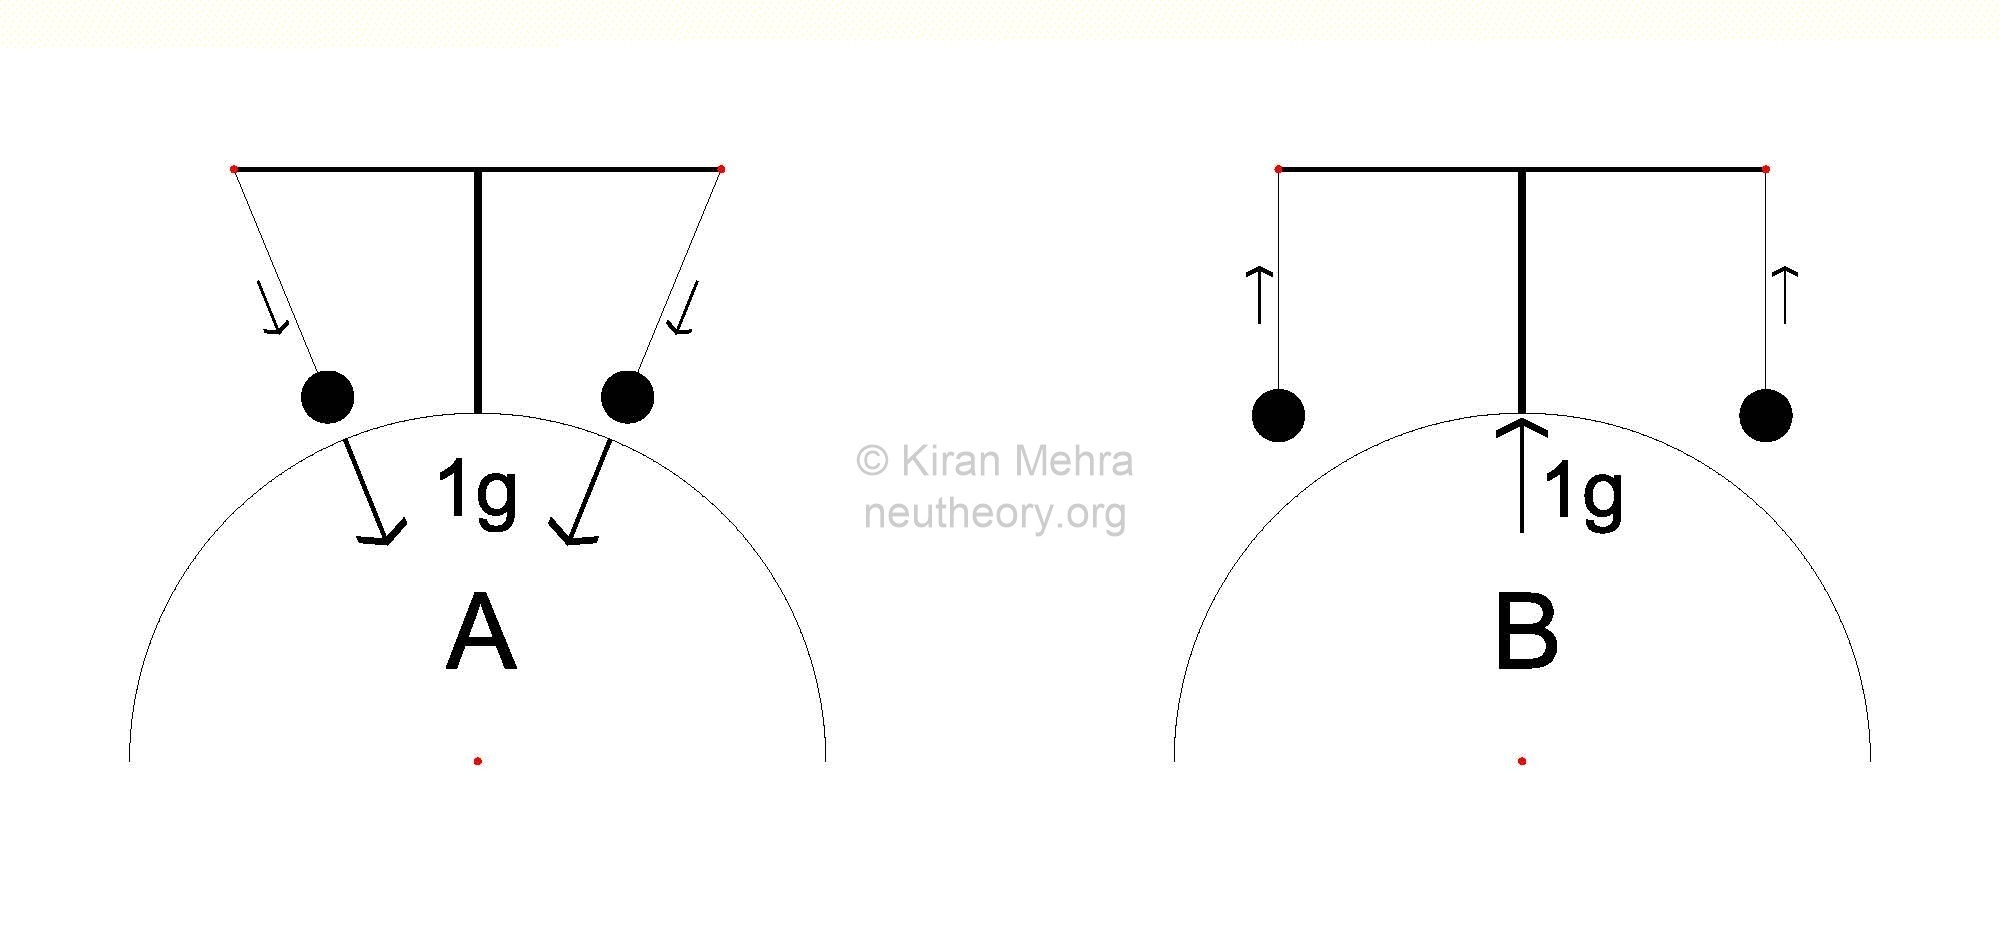 two half black circles each with two giant cantilevered pendulems with stationary bobs. In one the bobs point to the center of the earth and in the other they are parallel to the support.